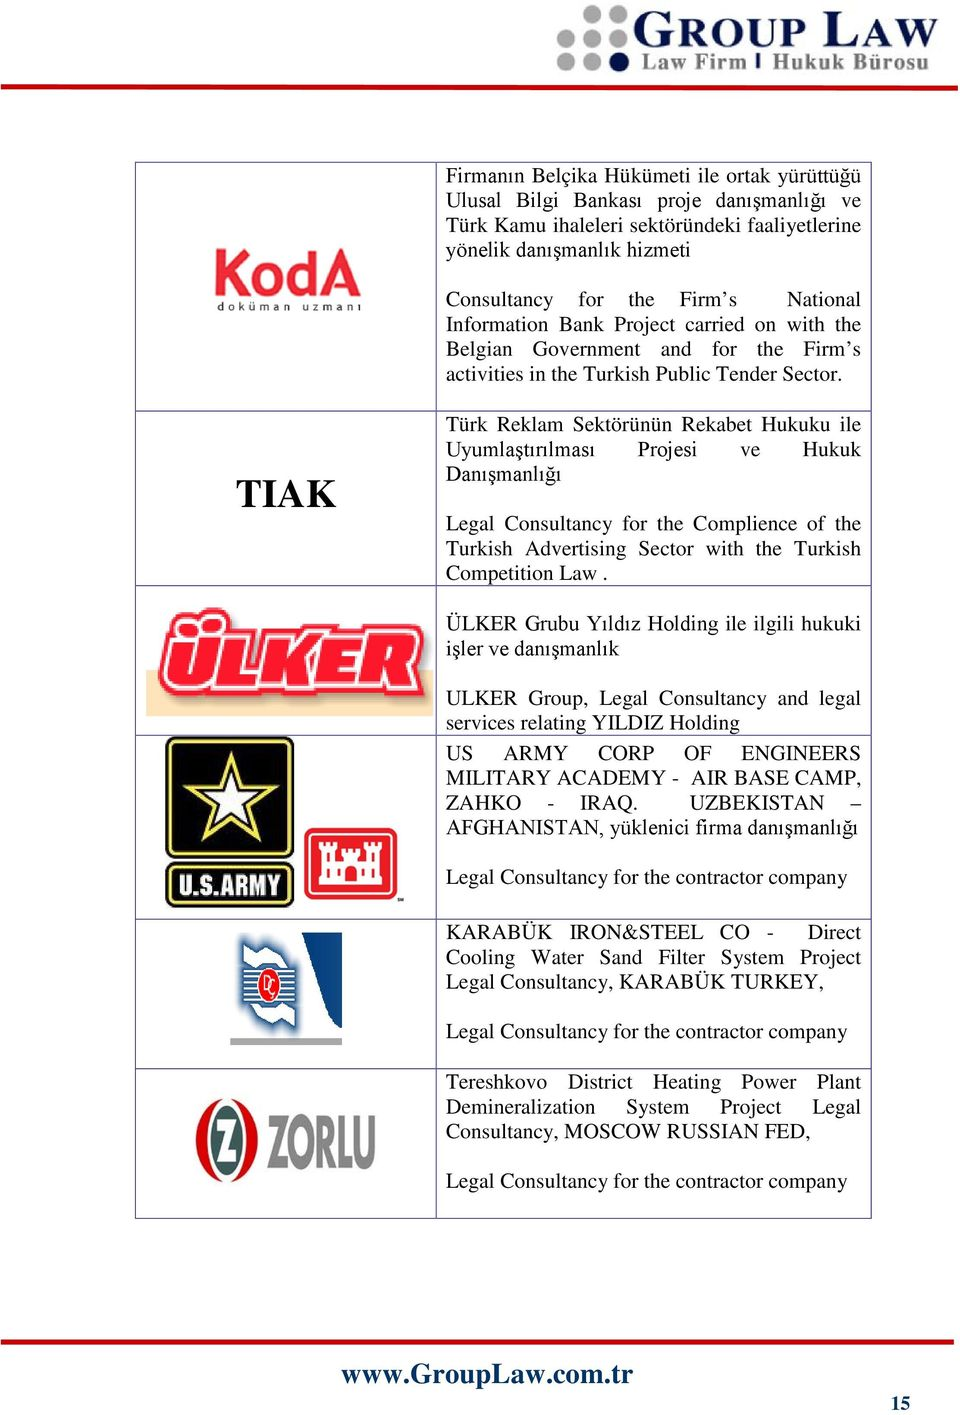 TIAK Türk Reklam Sektörünün Rekabet Hukuku ile Uyumlaştırılması Projesi ve Hukuk Danışmanlığı Legal Consultancy for the Complience of the Turkish Advertising Sector with the Turkish Competition Law.